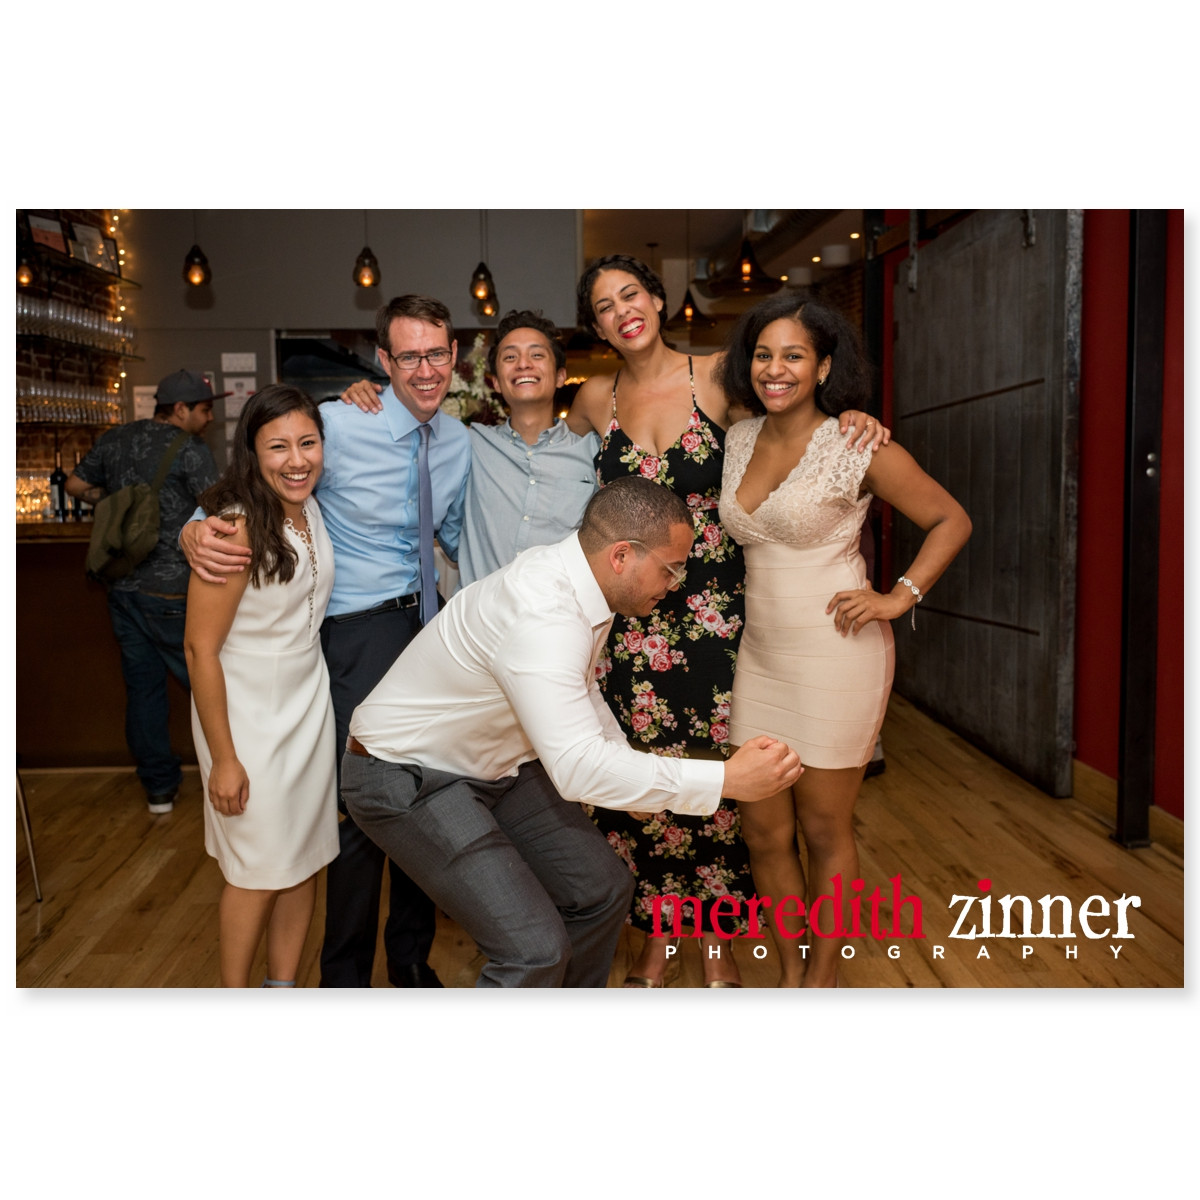 Meredith_Zinner_Photography_StilesCelebration_0462